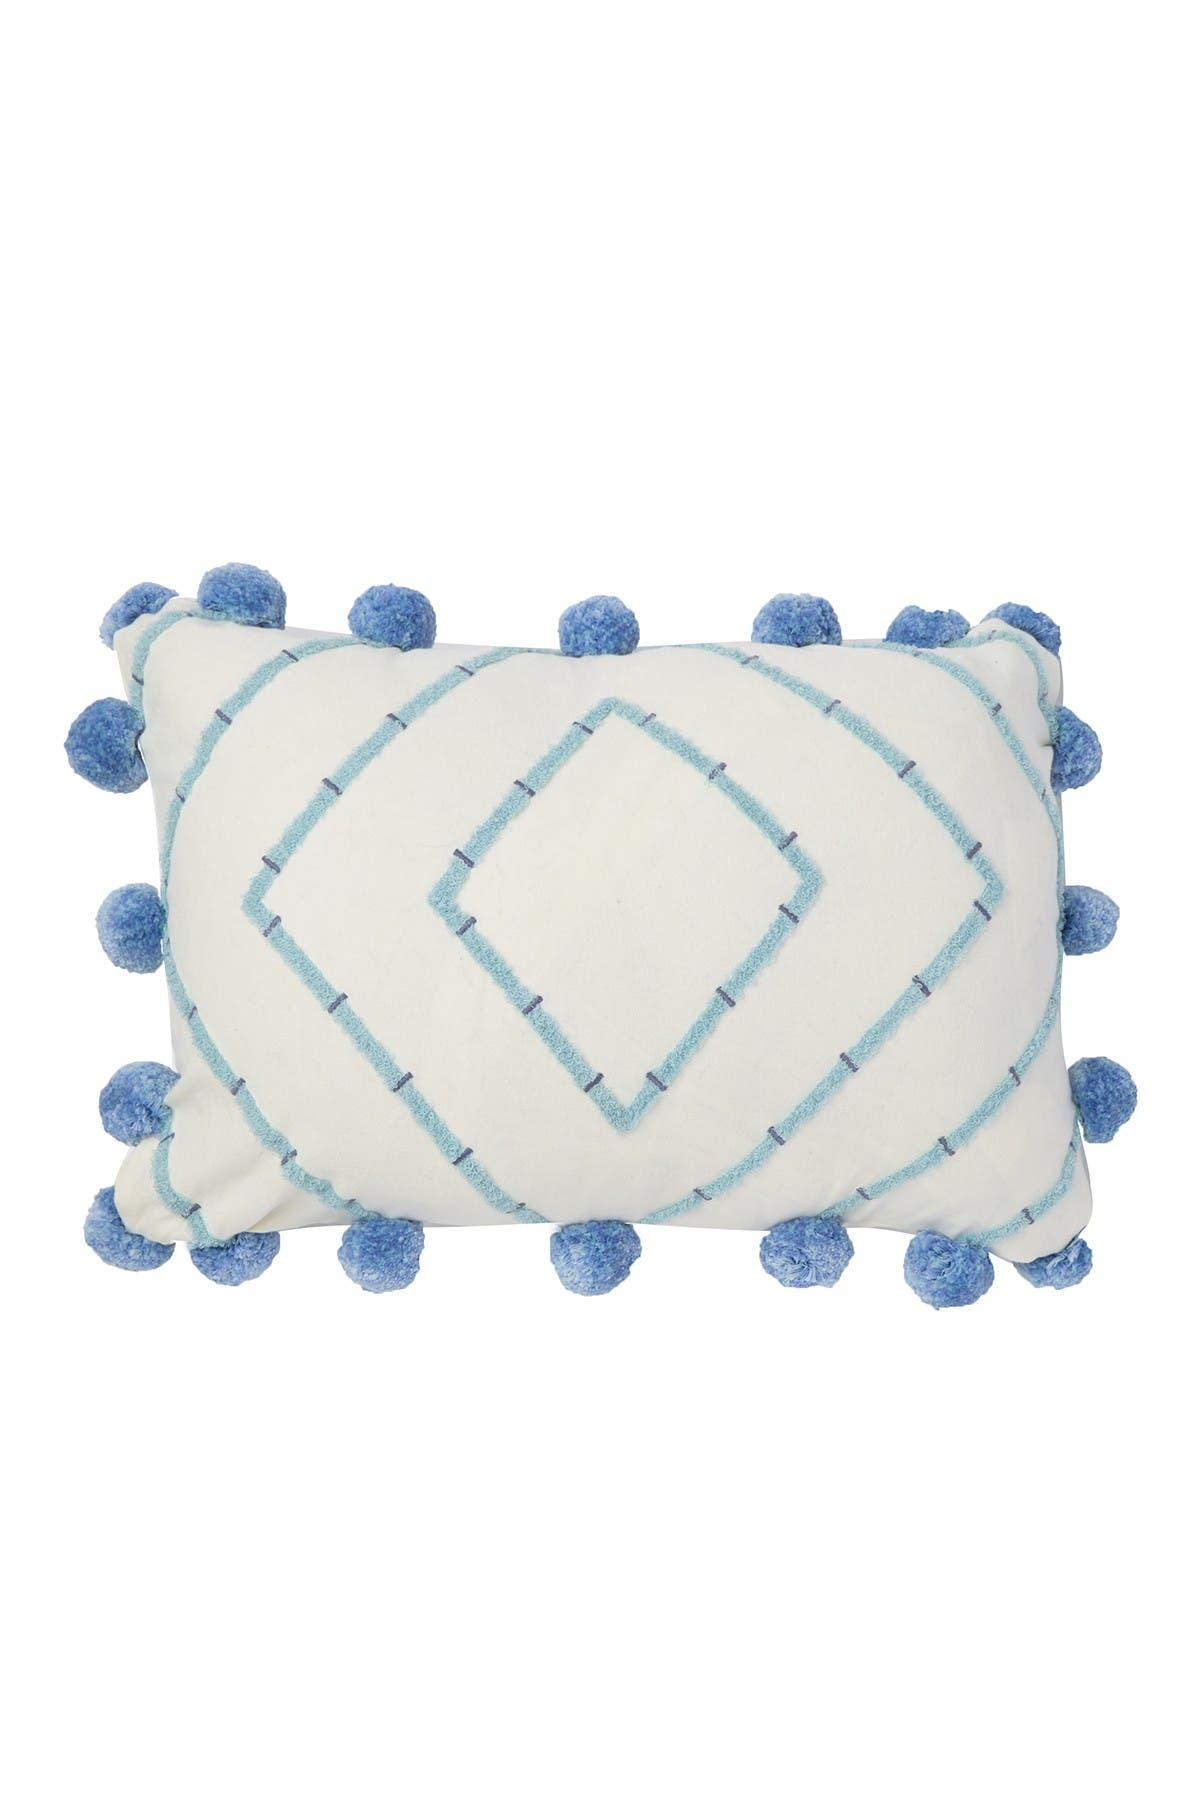 "Image of Nordstrom Rack Diamond Tufted Pillow - 14""x20"" - Multi"